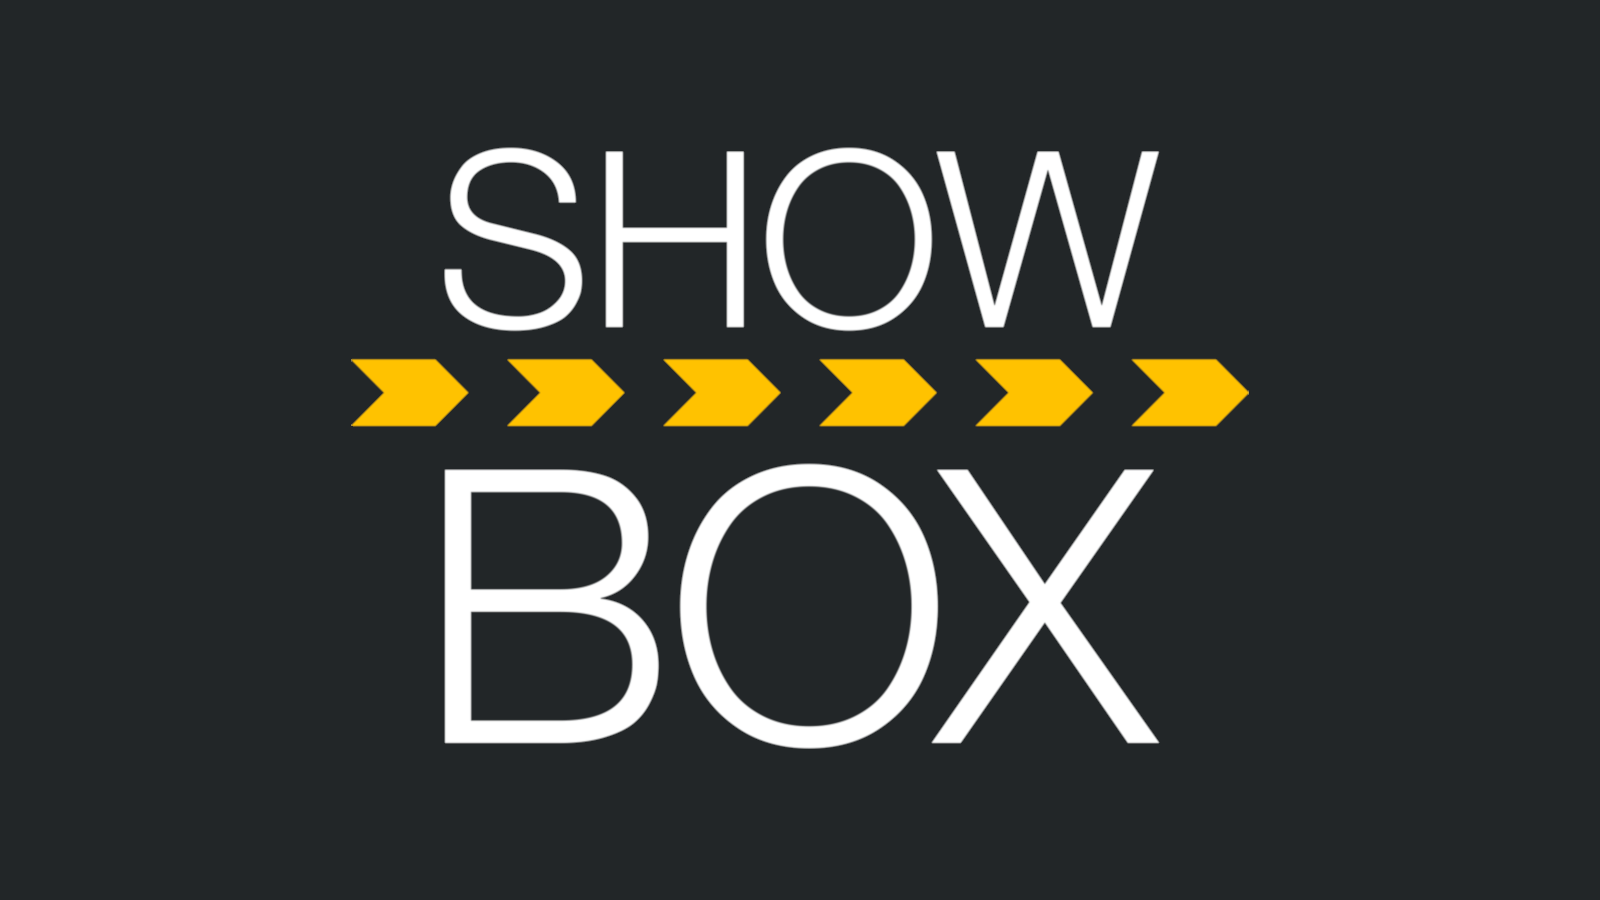 Showbox APK: Features, How to Use Showbox and other information - Buzz Muzz